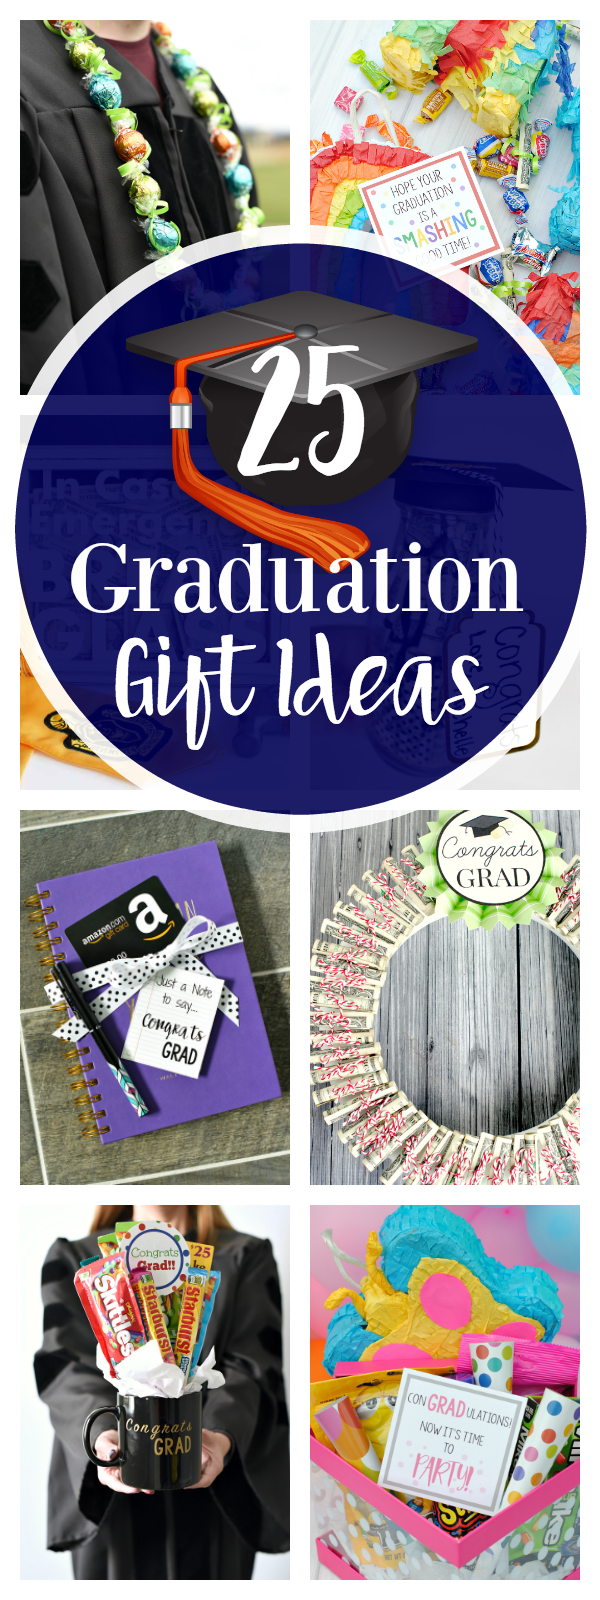 25 Fun and Unique Graduation Gifts to Give to Your Grad This Year! Great gifts for grads of all ages. #graduation #gradgifts #graduationideas #graduationgifts